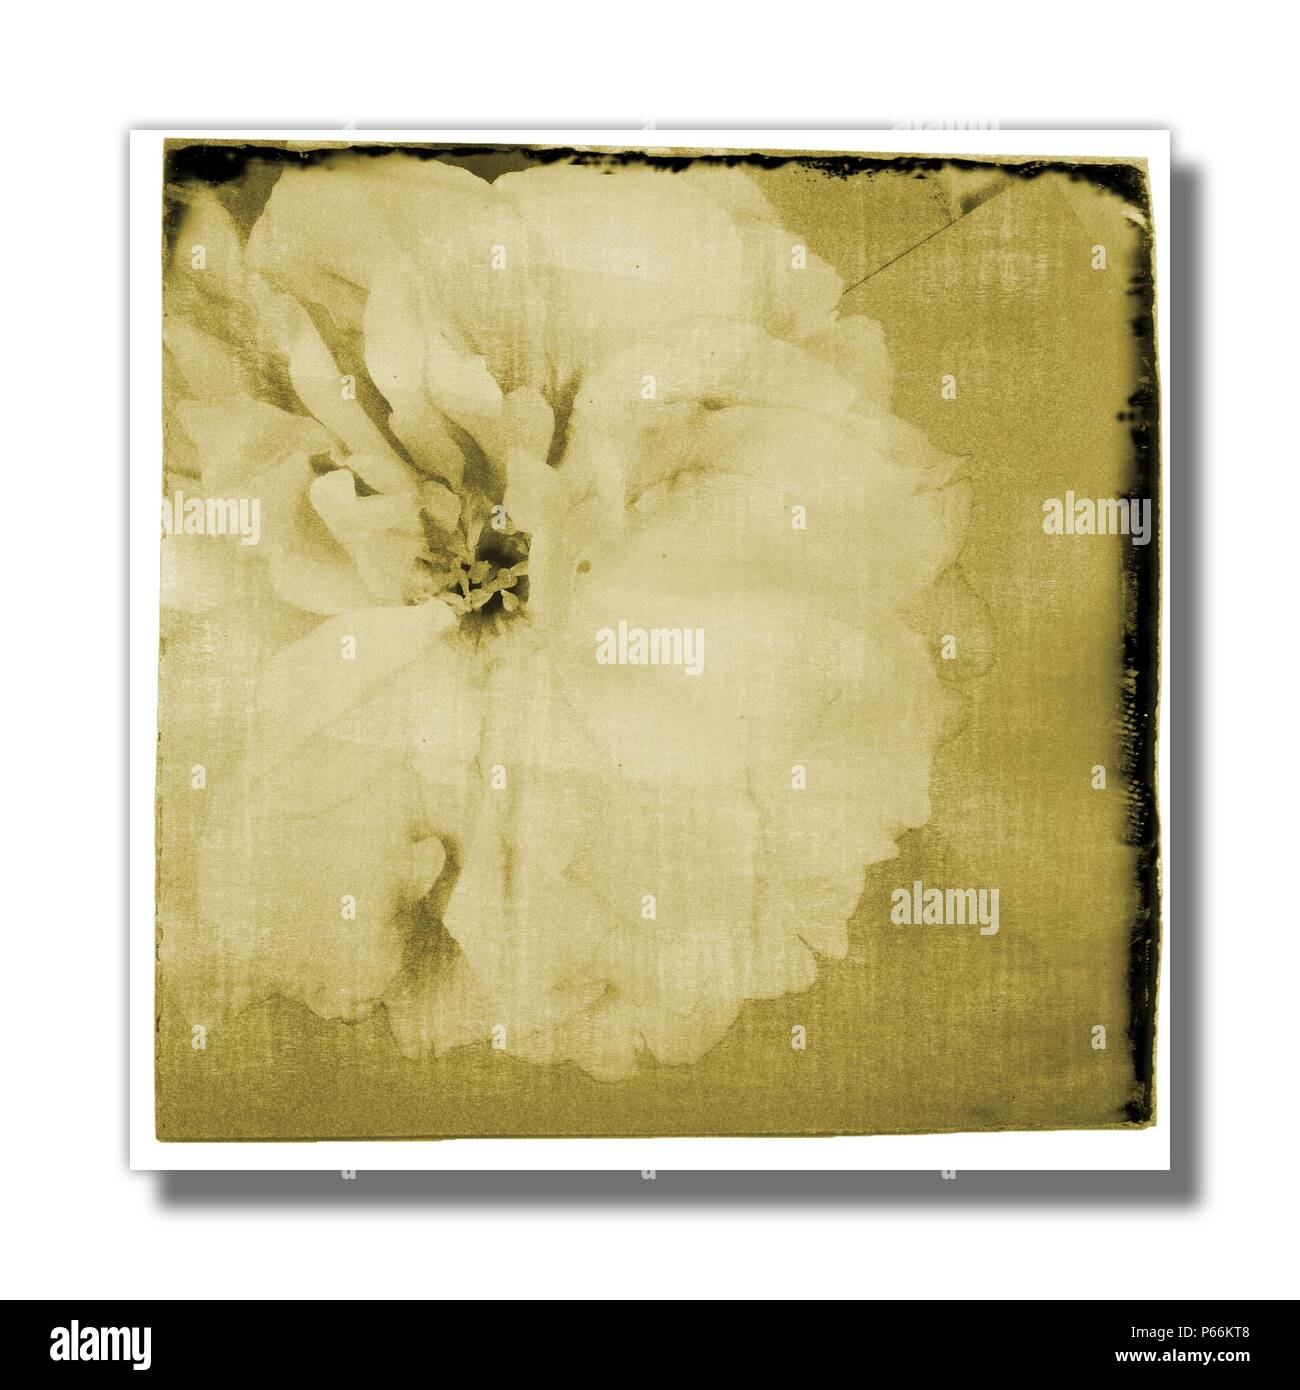 Cherry sakura flower on paper in sepia tones. - Stock Image